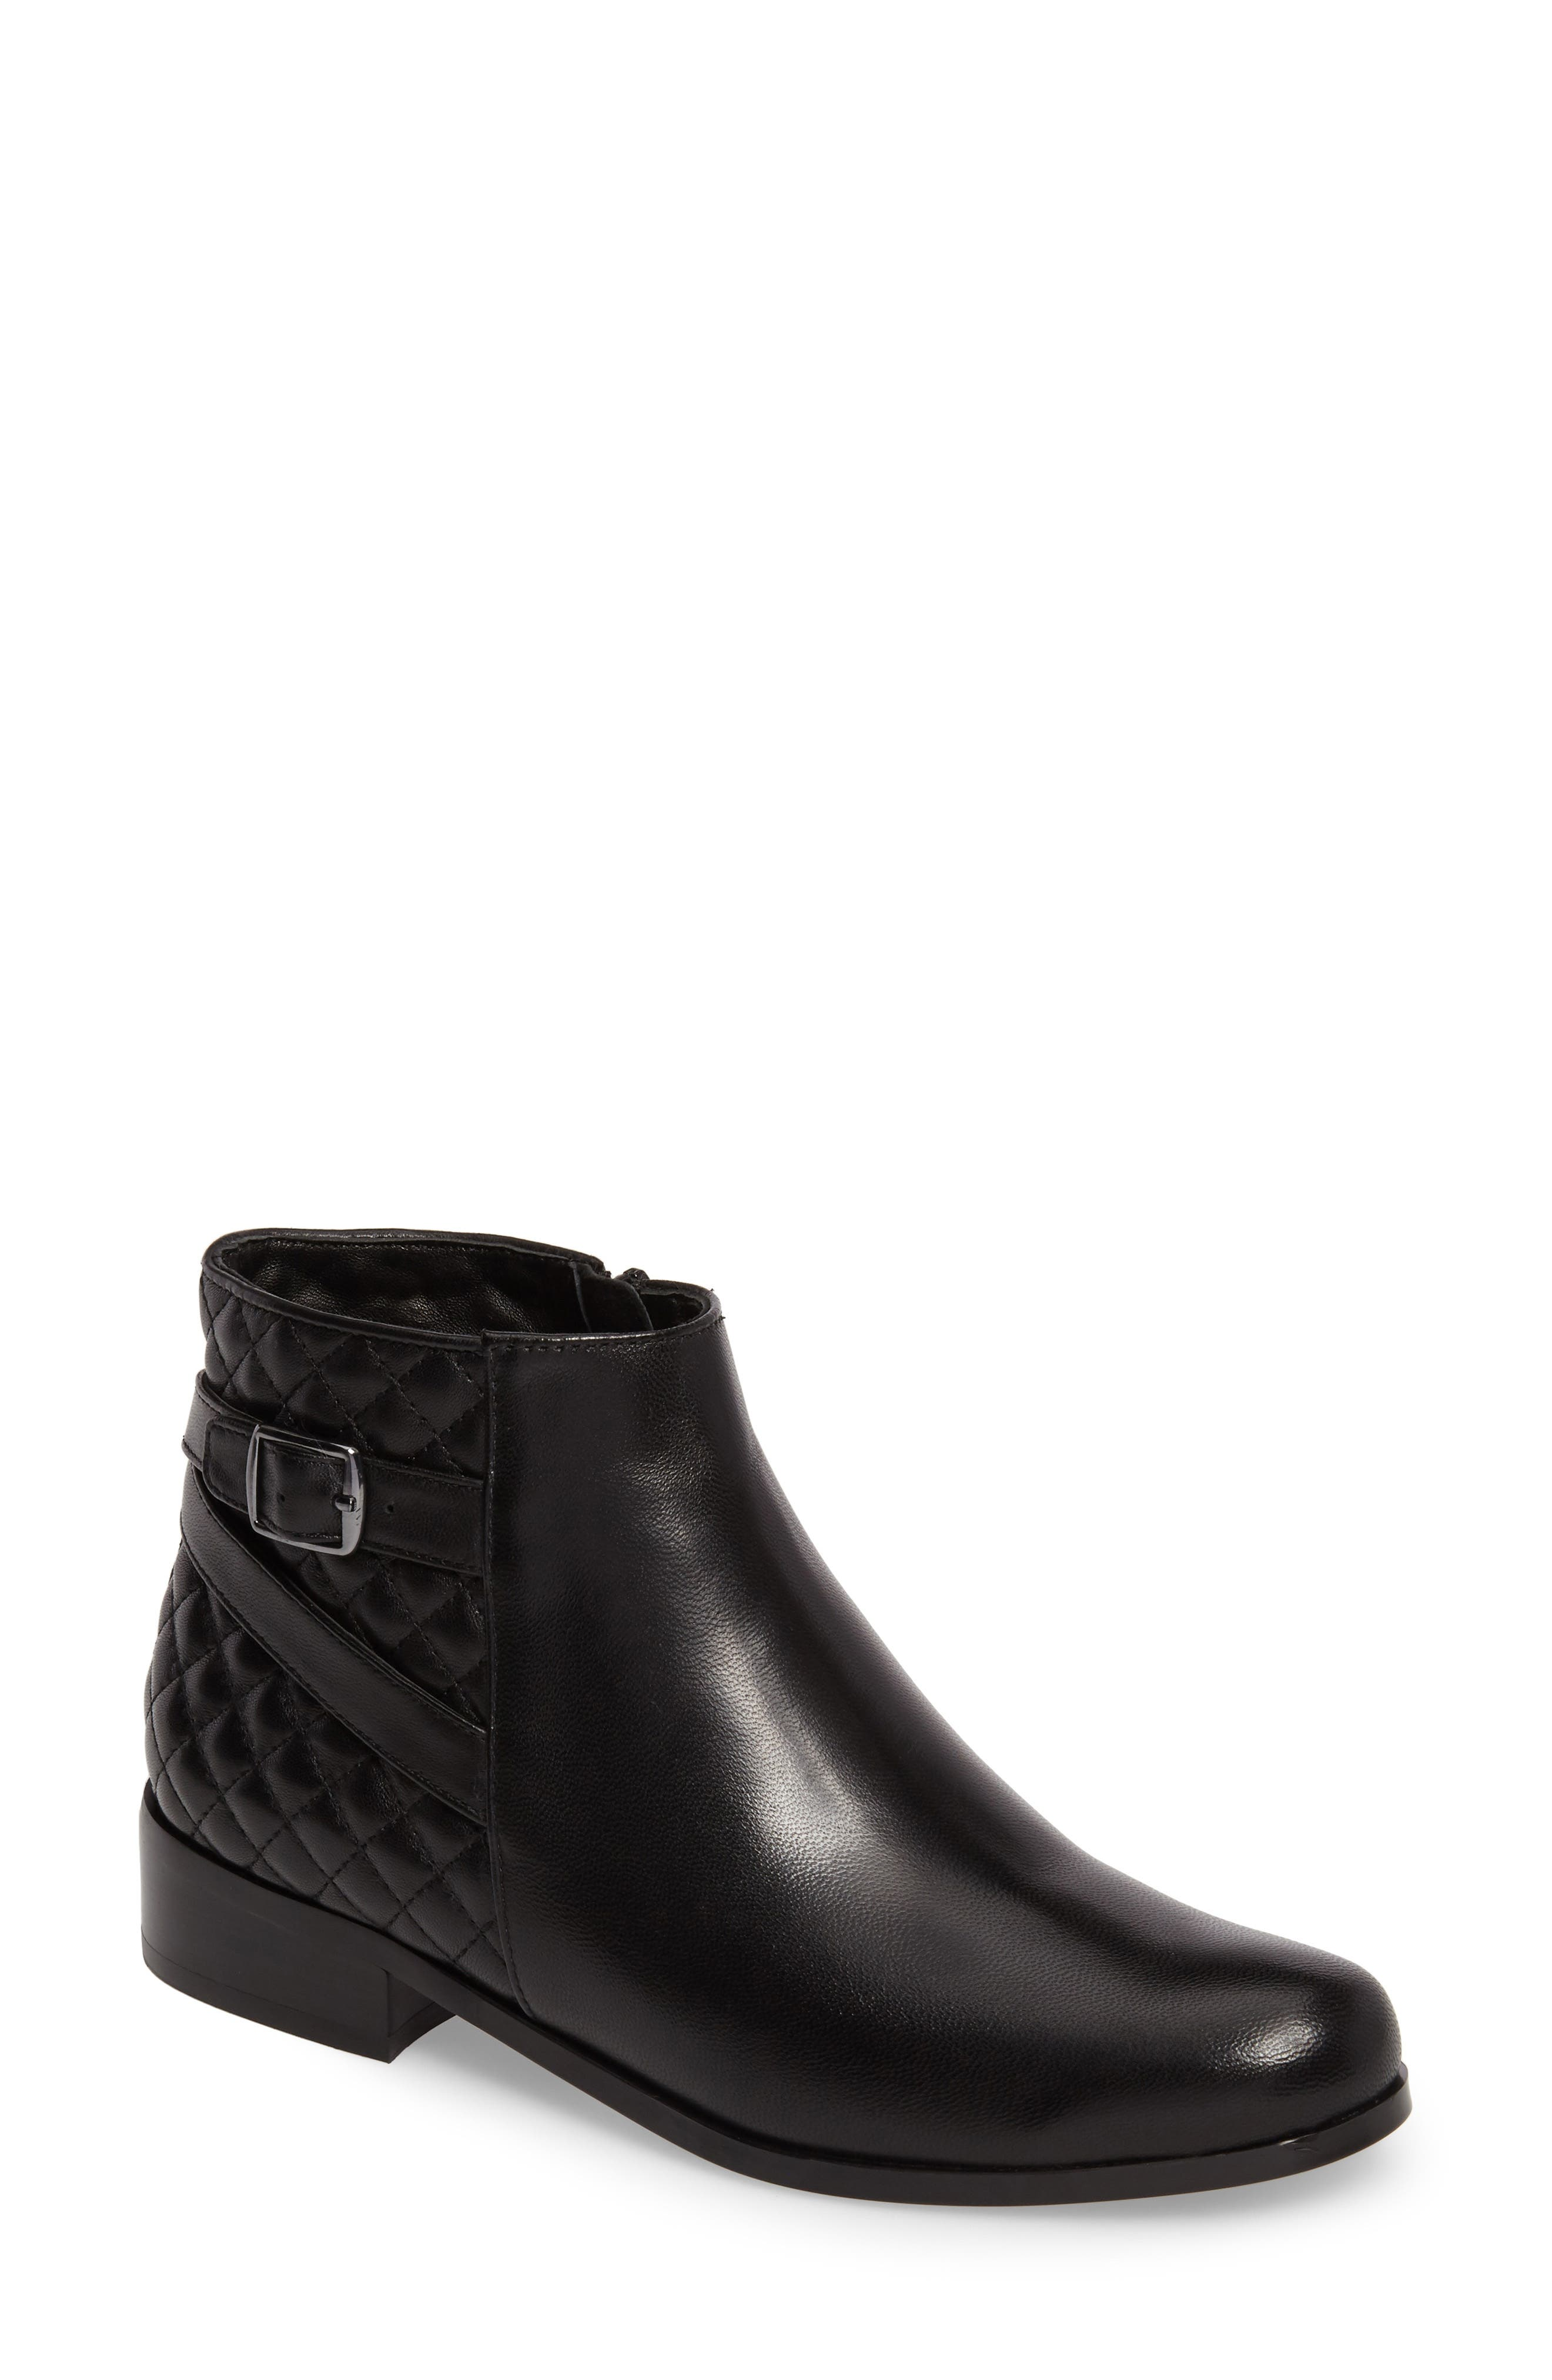 Reanne Buckle Bootie,                         Main,                         color, Black Leather